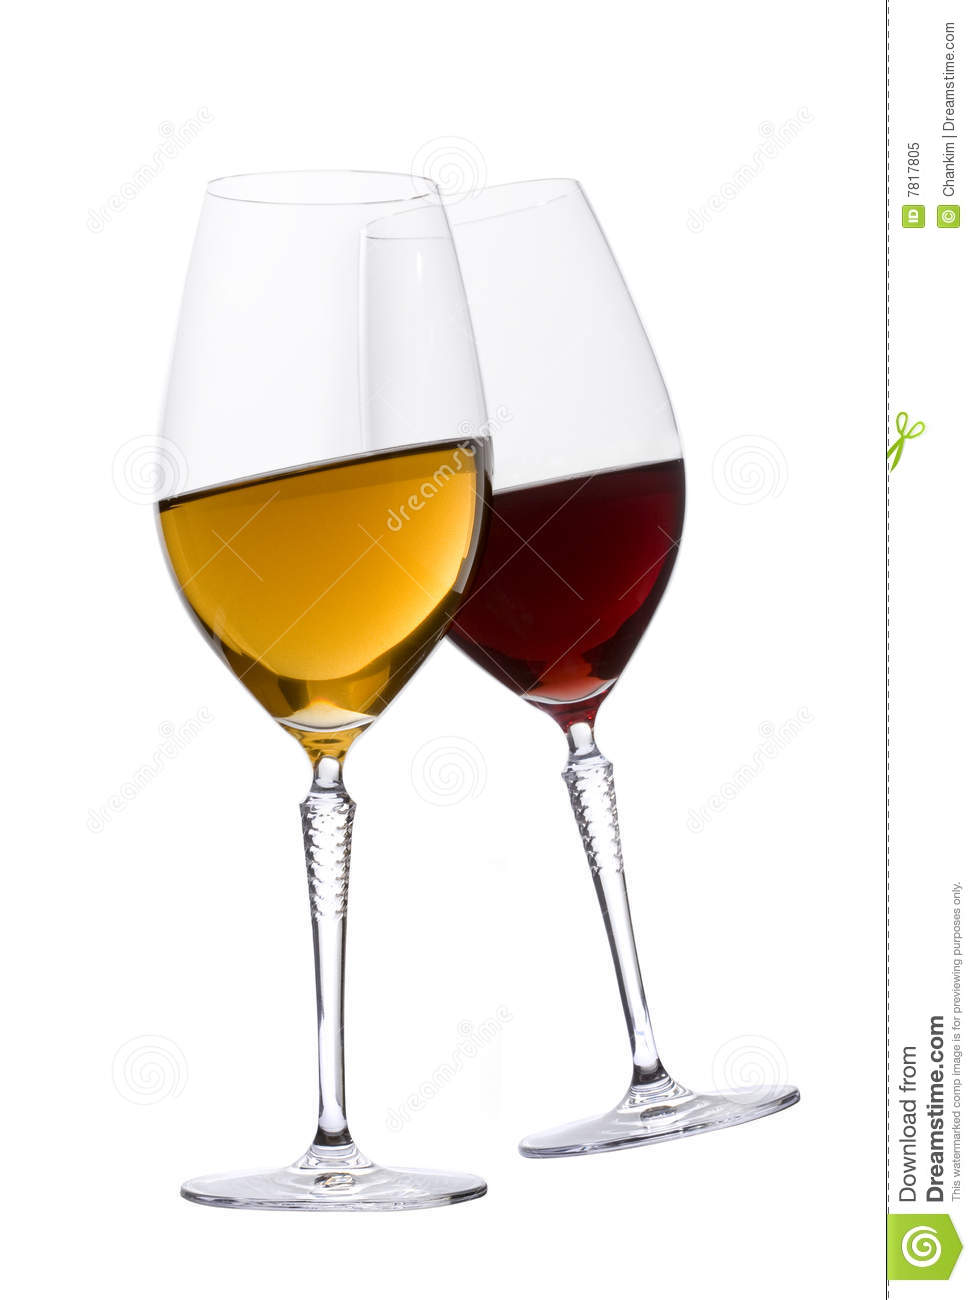 Glasses of red and white wine royalty free stock photo for Cocktail 0 base de vin blanc